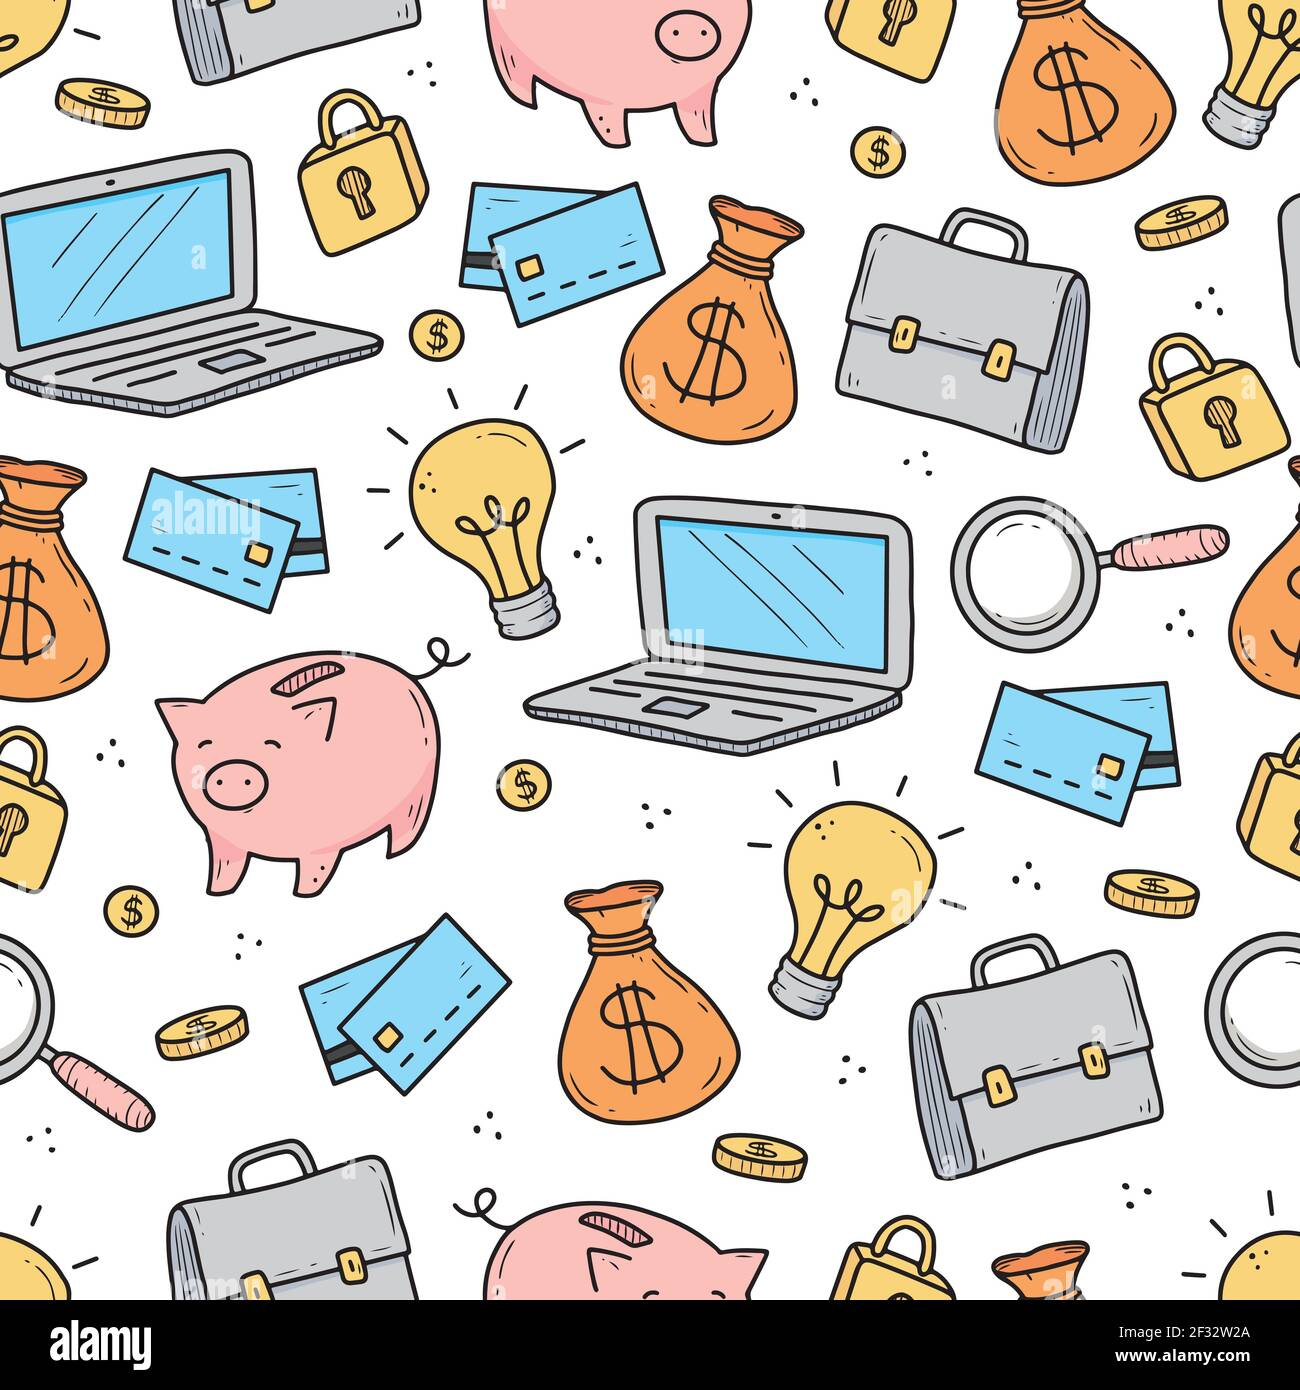 Hand Drawn Seamless Pattern Of Business And Finance Elements Money Calculator Coin Doodle Sketch Style Business Element Drawn By Digital Pen Vector Illustration For Wallpaper Background Textile Design Stock Vector Image